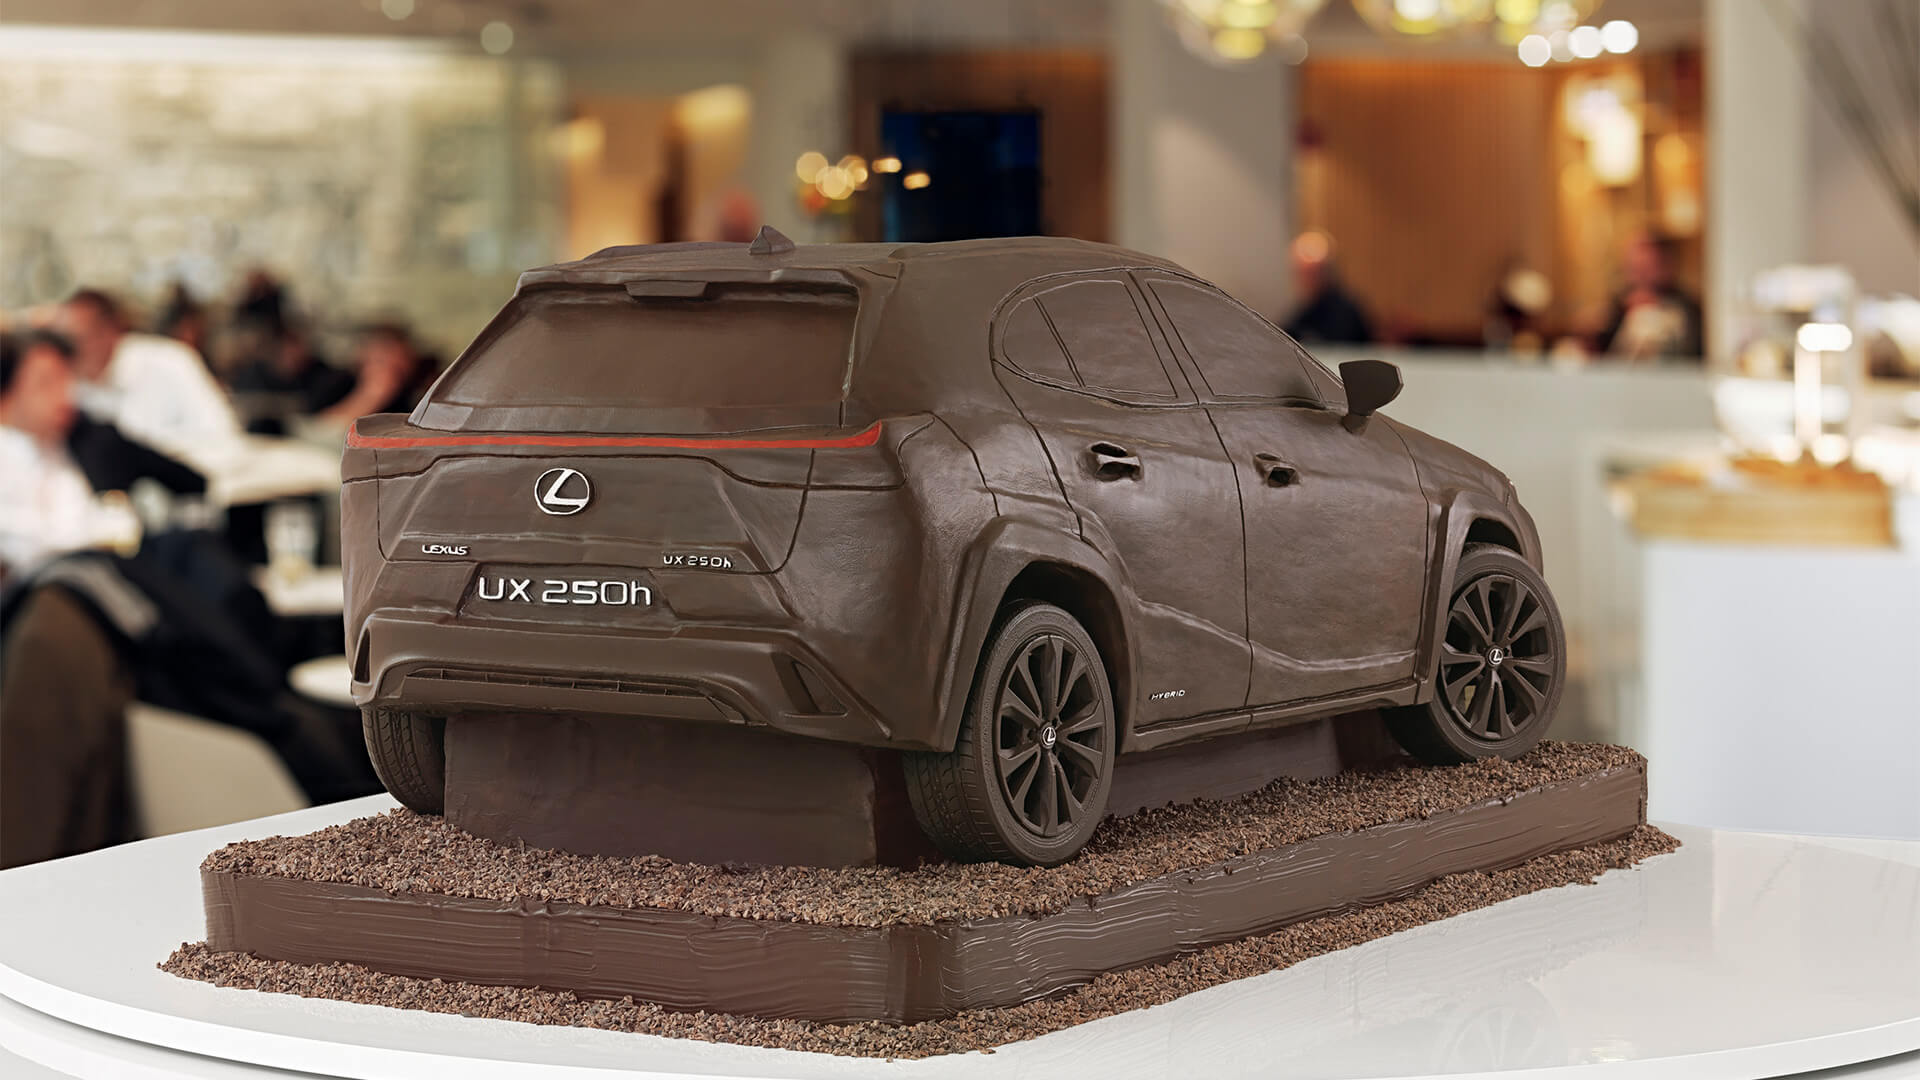 2019 lexus lounge UX Chocolate Car 1920x1080 02